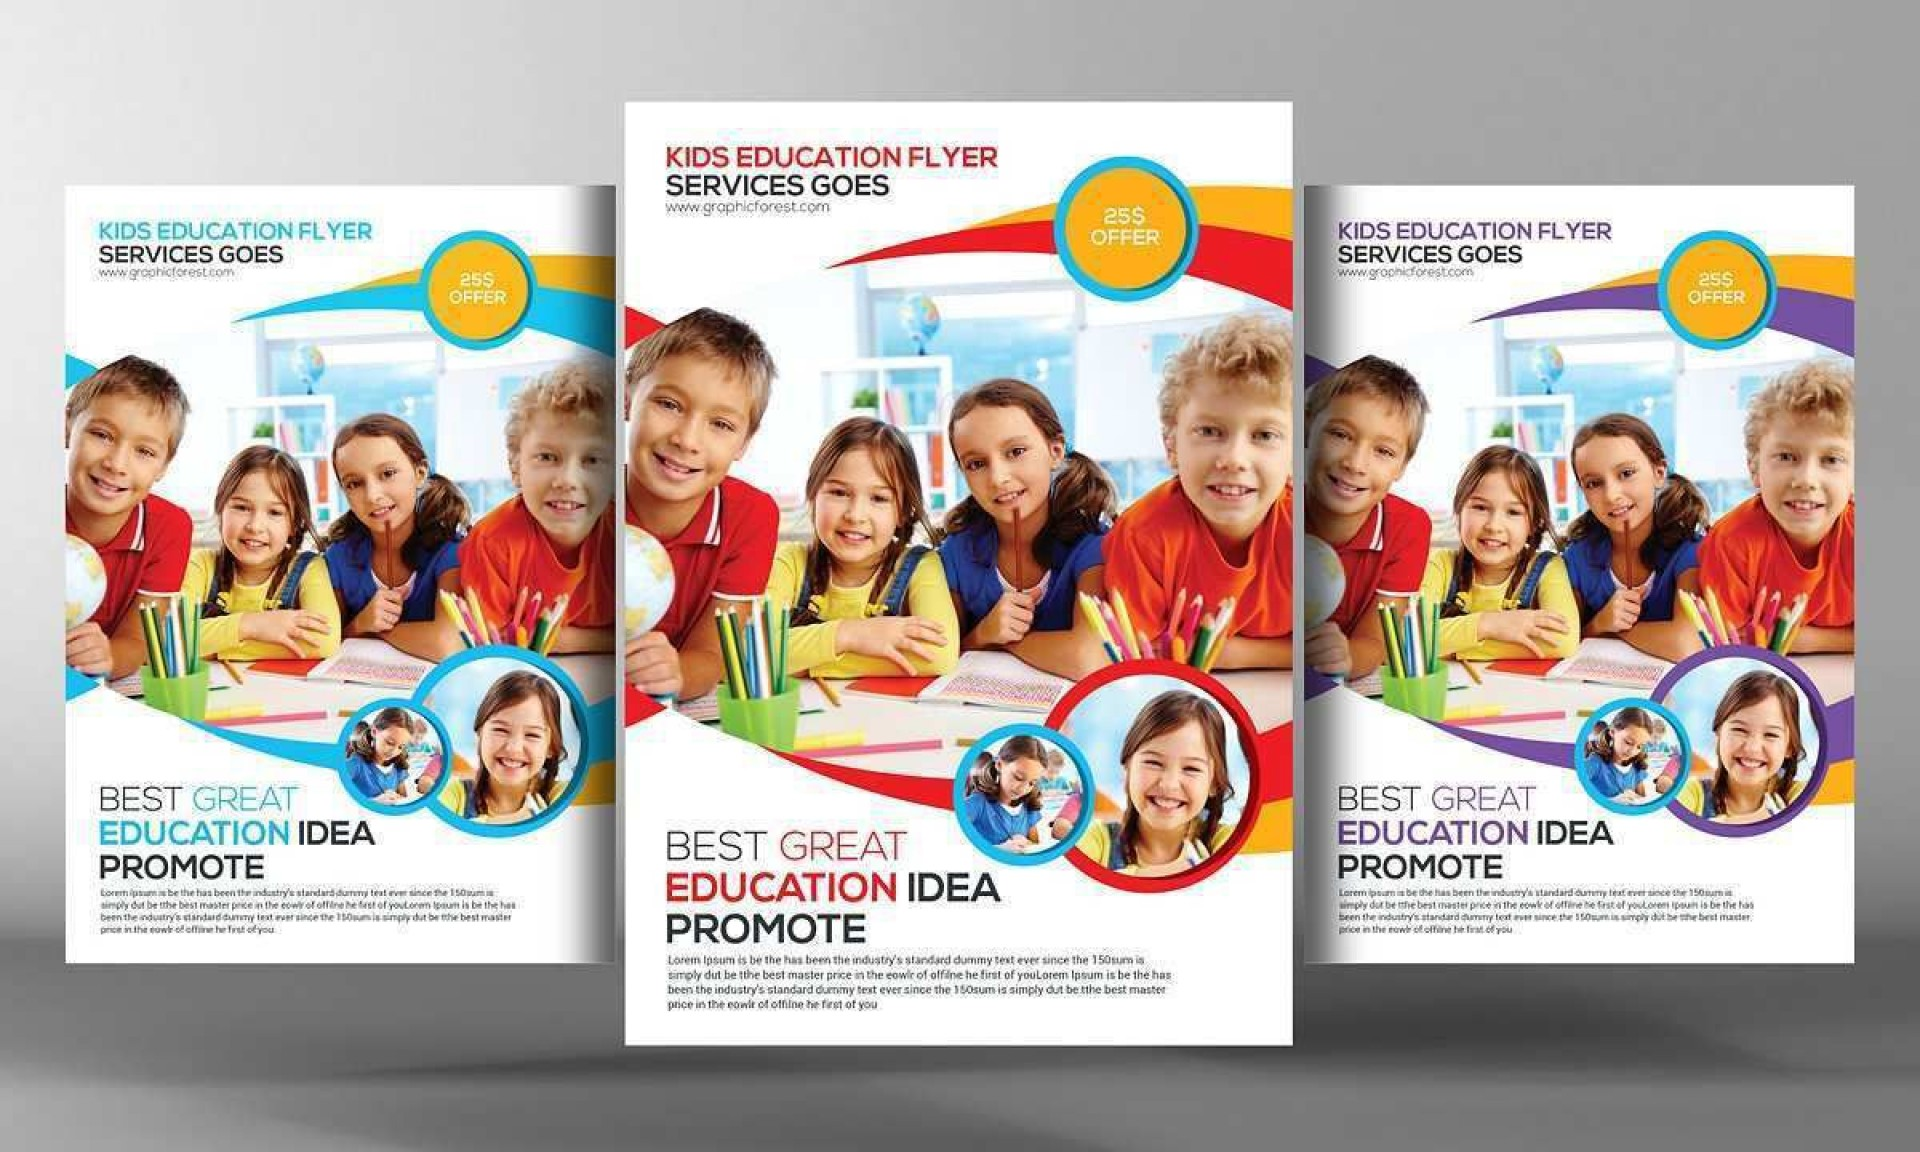 001 Archaicawful Free School Flyer Design Template Sample  Templates Creative Education Poster1920